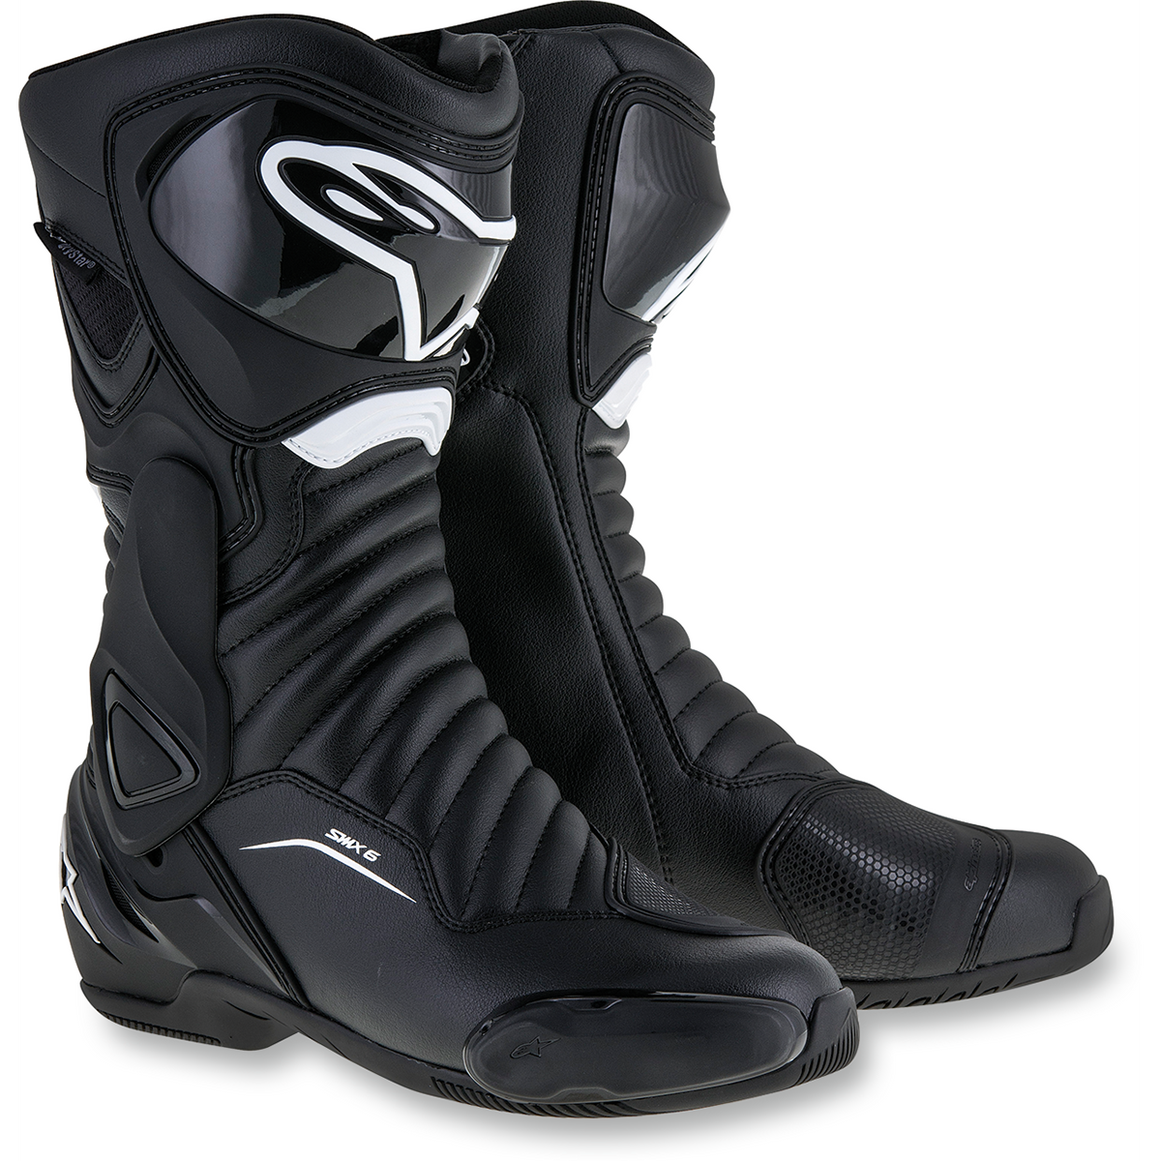 Smx-6 V2 Drystar<sup>&reg;</sup> Boots